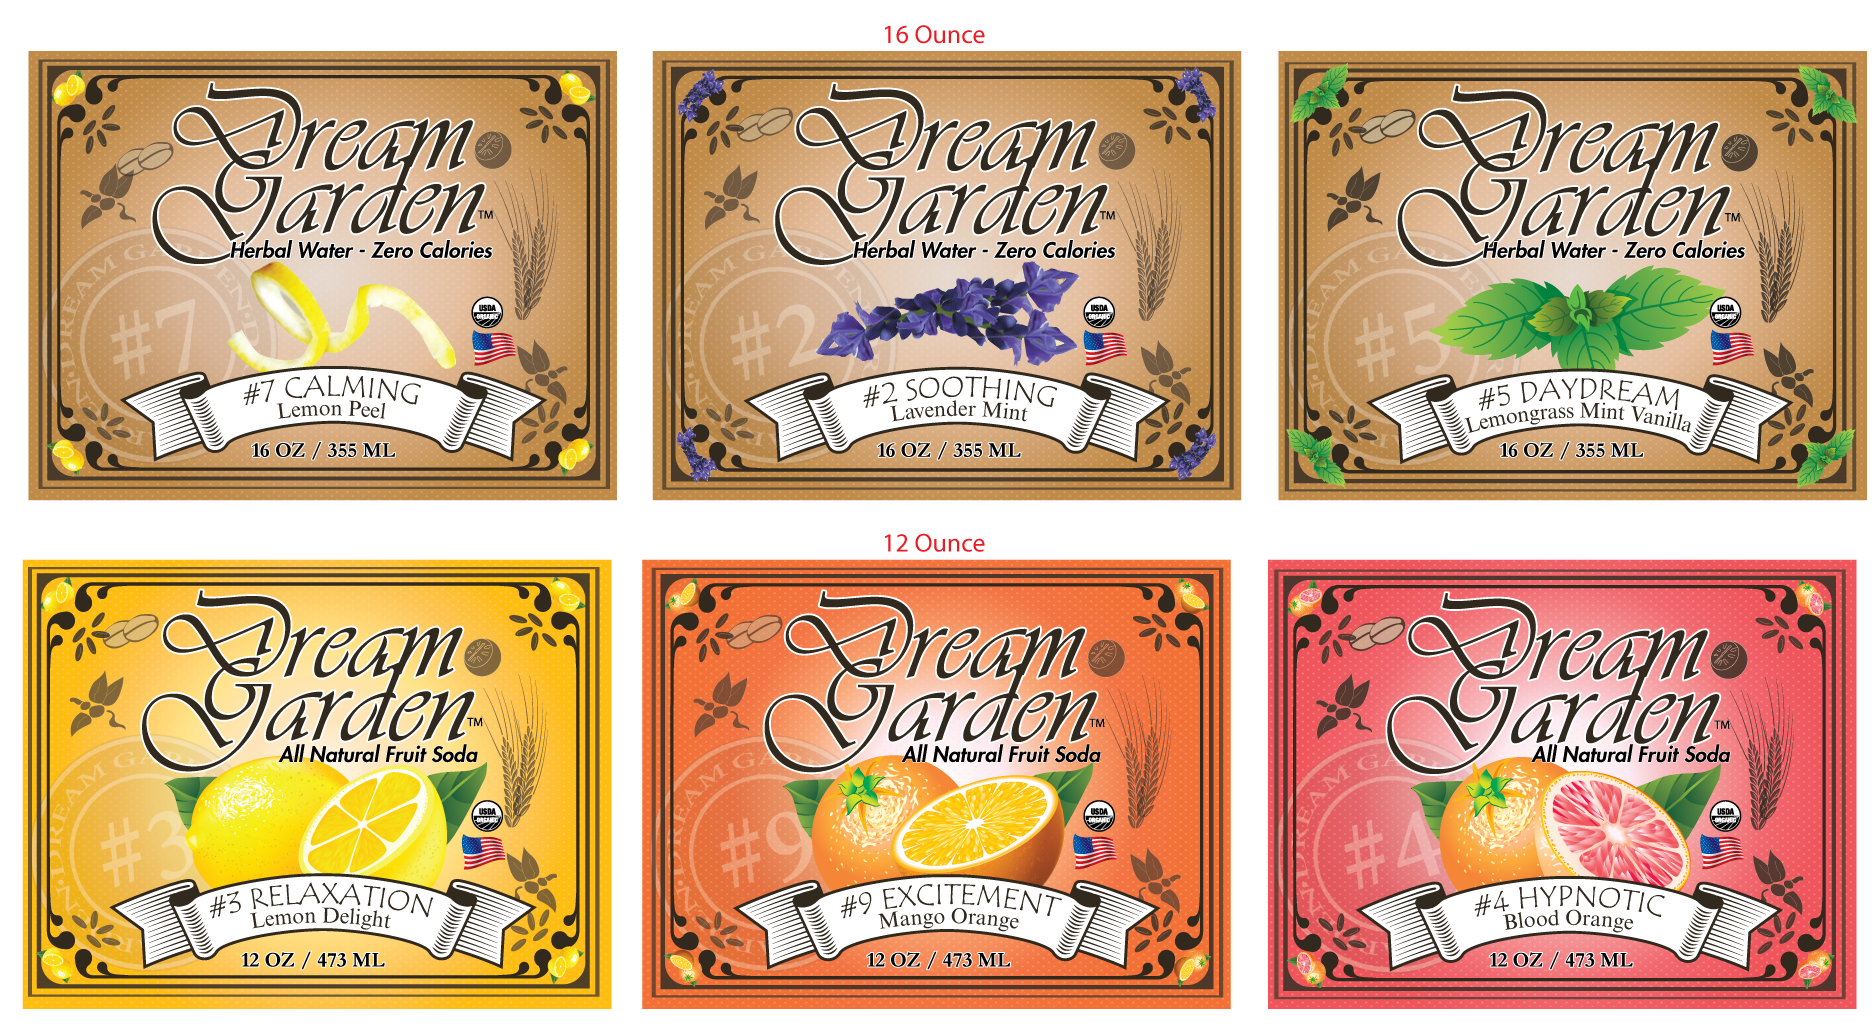 Dream_Garden_Labels_v20